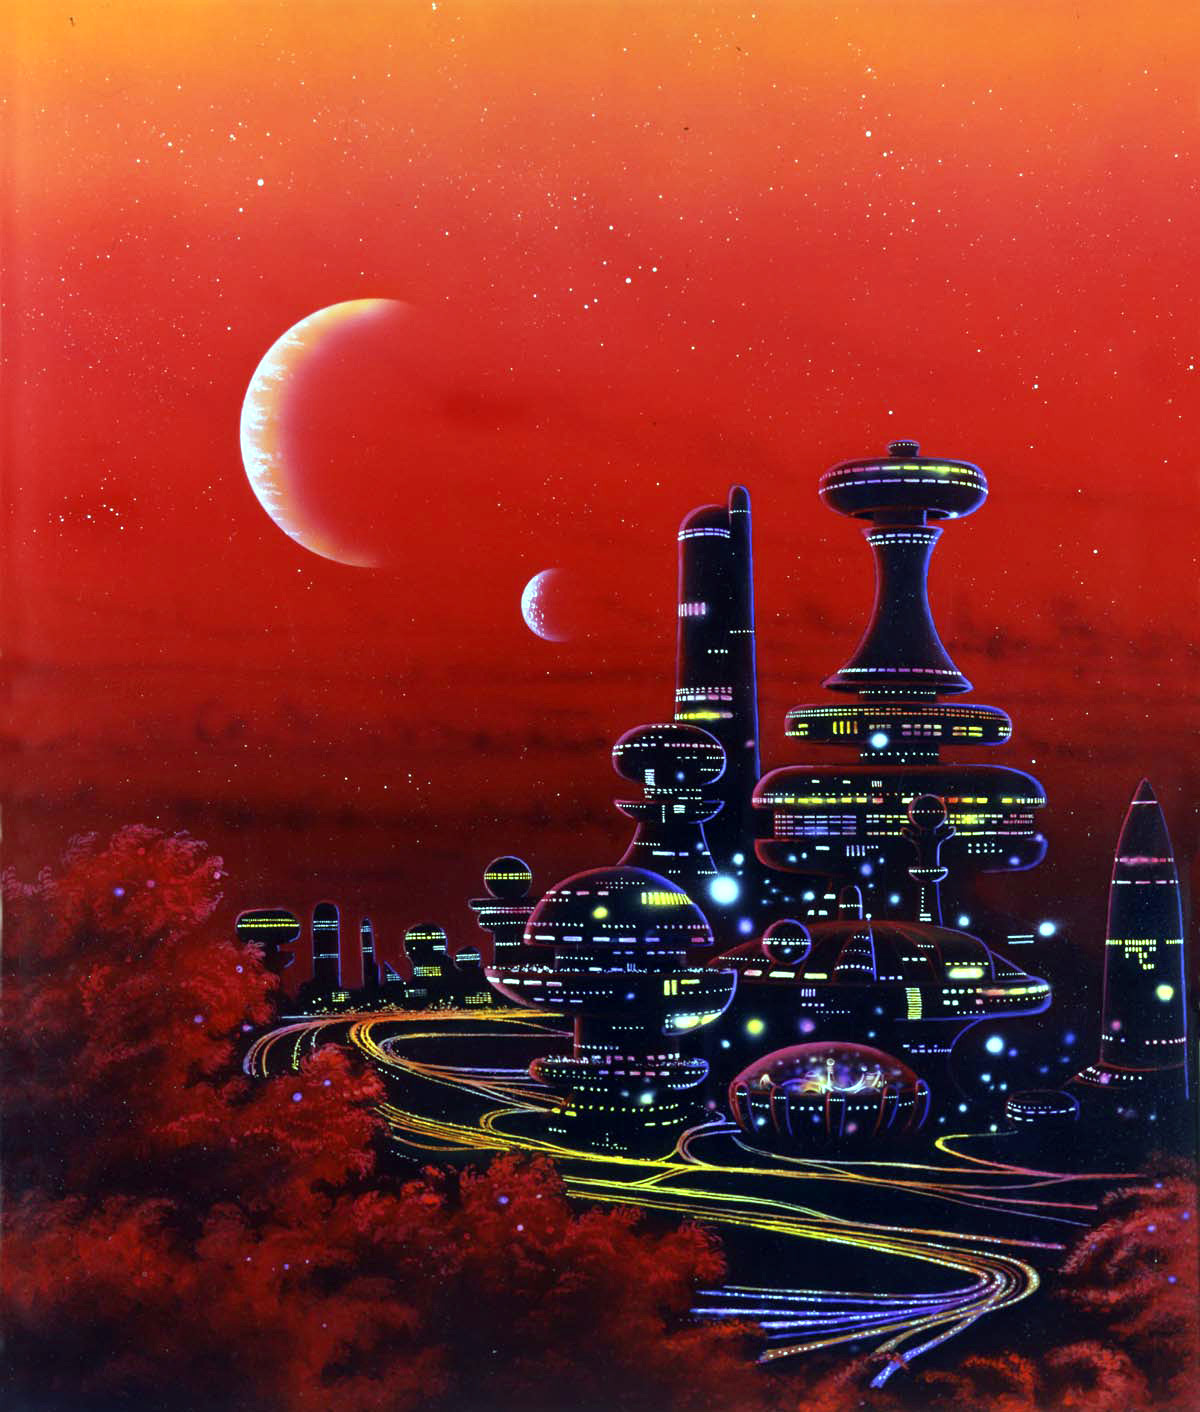 70s Sci Fi Art Chris Foss: Photo Set John Berkey Tim White Michael Bohme Chris Foss